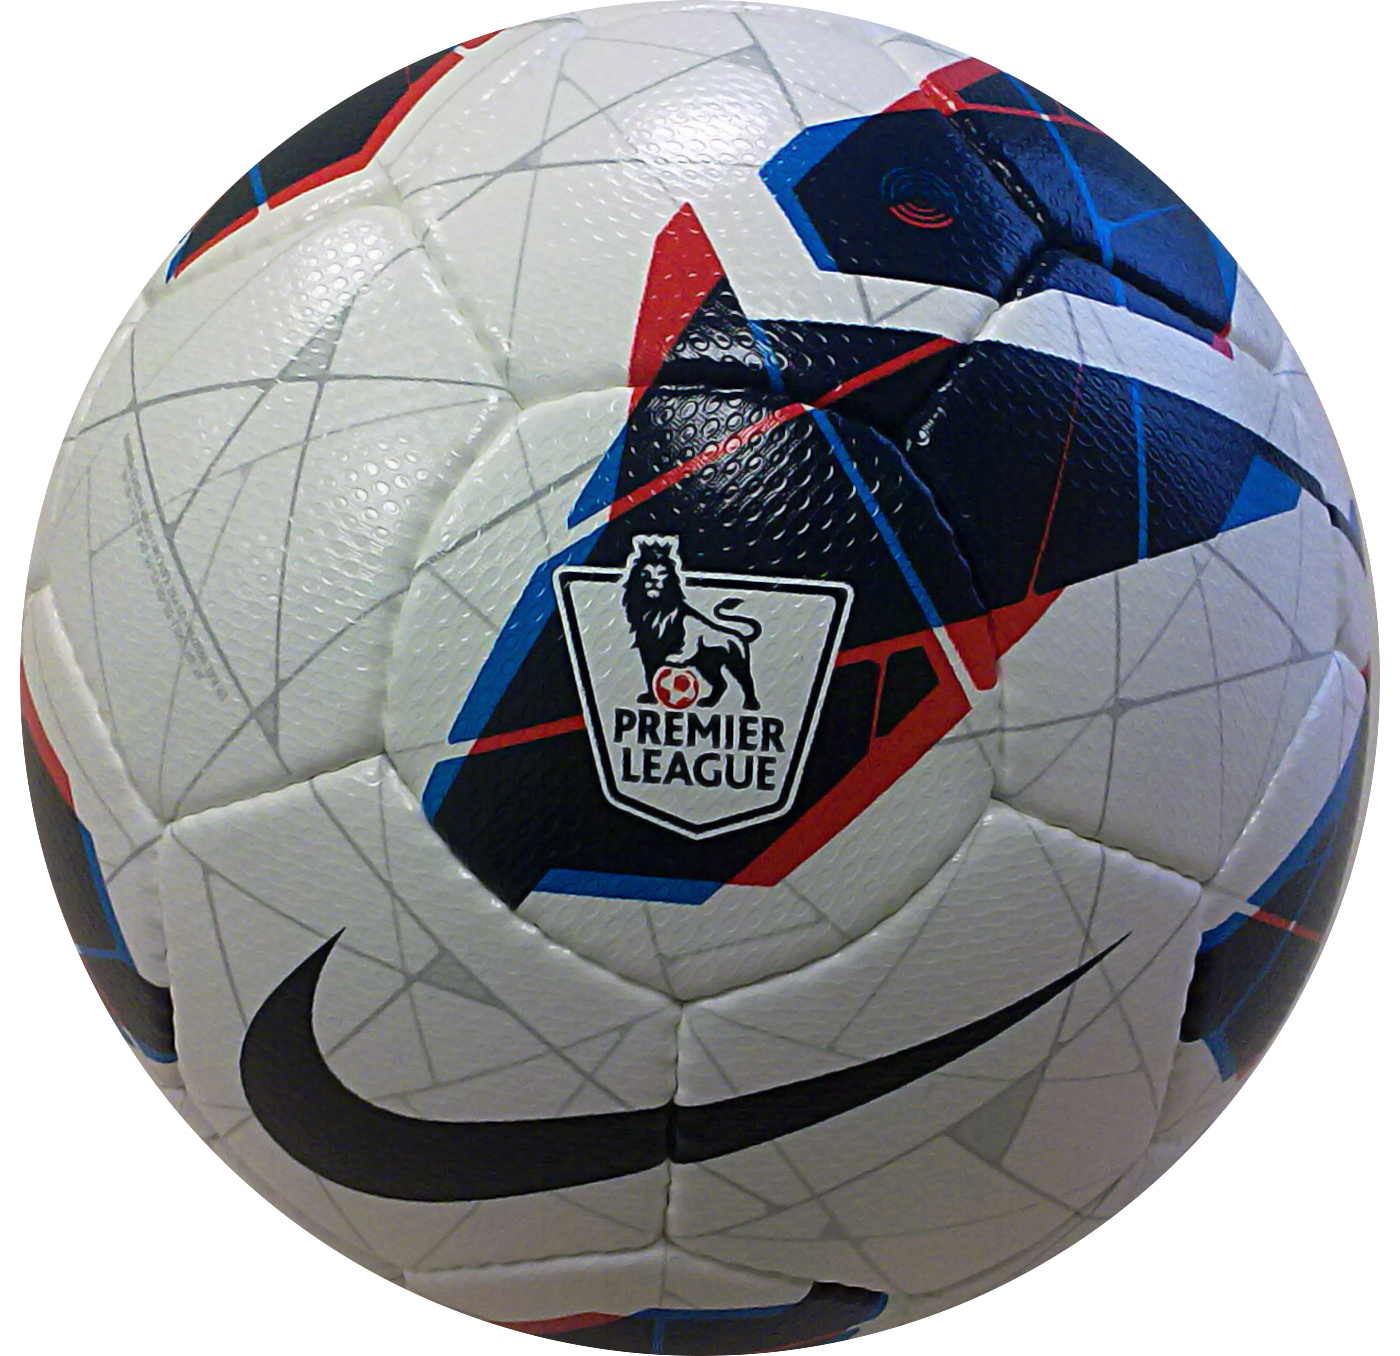 Image Result For Epl